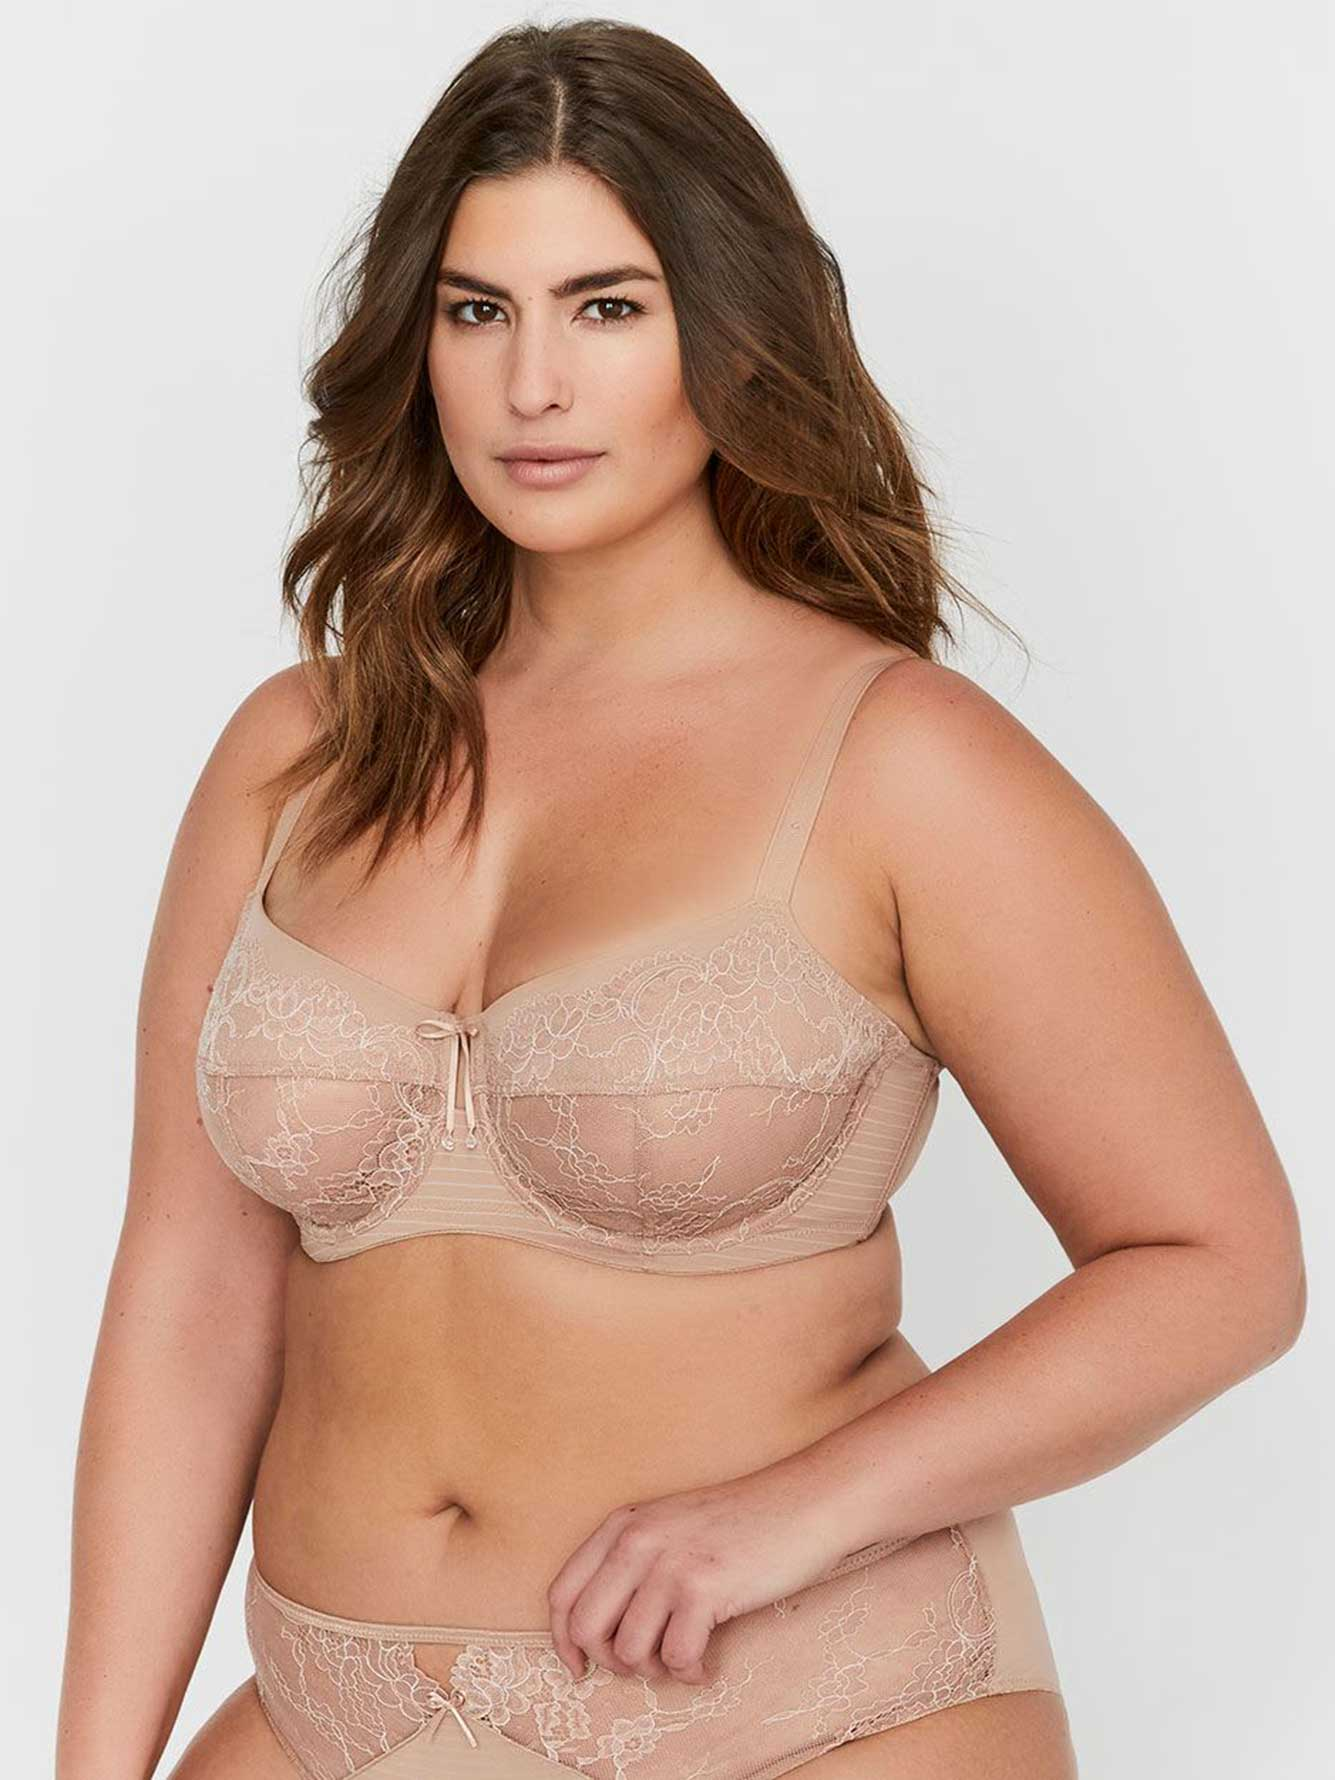 Soutien-gorge Attraction Fatale non coussiné à coutures Ashley Graham